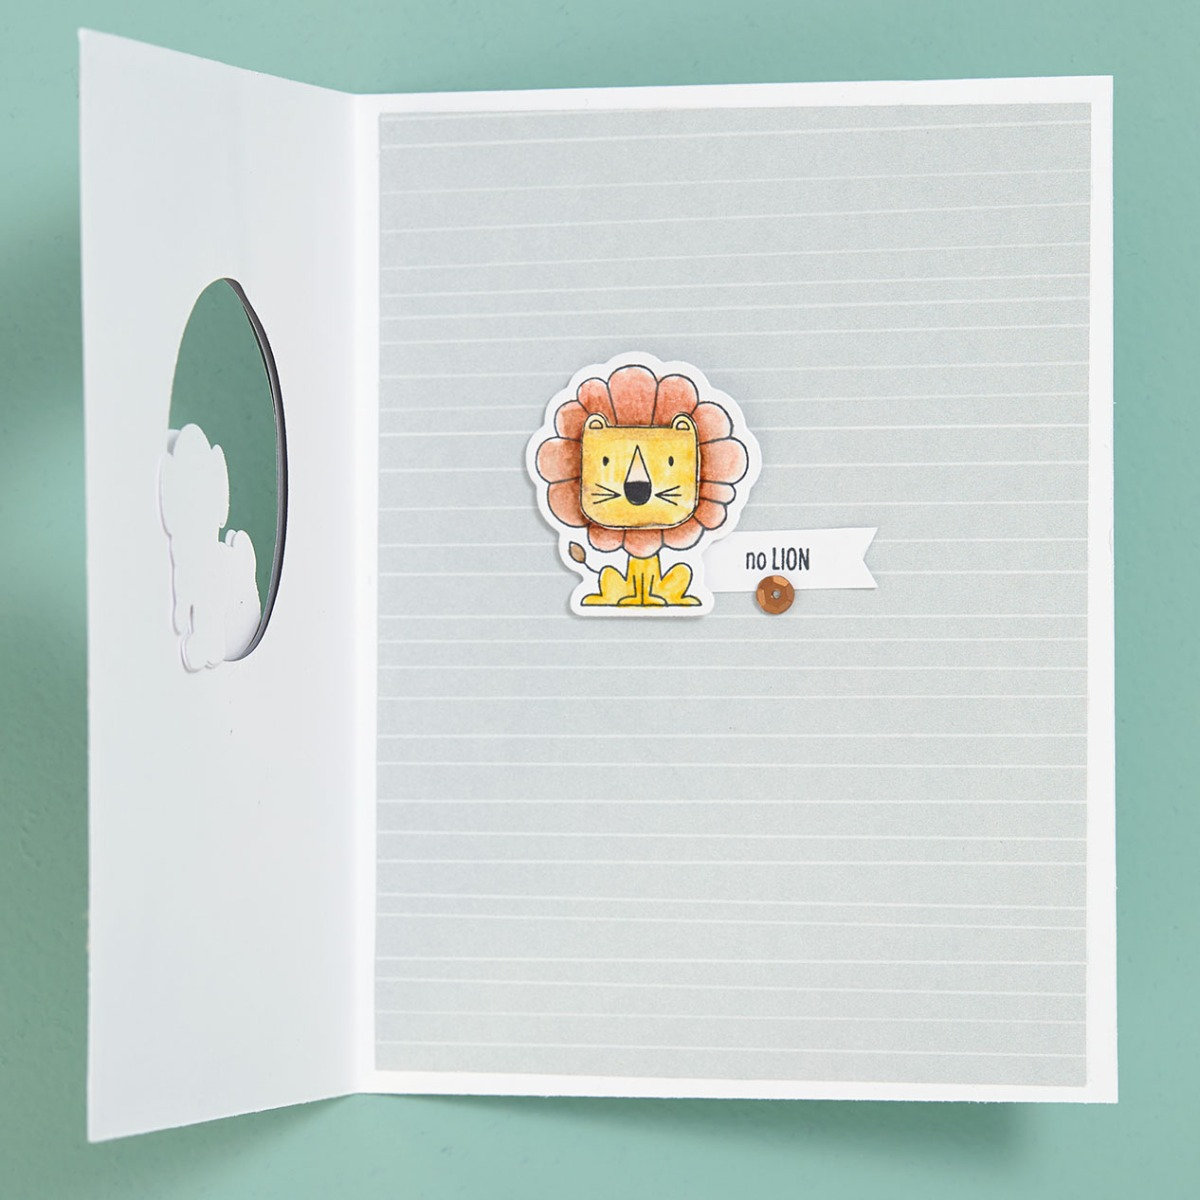 Thin Cuts Technique #ctmh #closetomyheart #thincuts #dies #diecuts #cardmaking #diy #wildaboutyou #animals #zooanimals #lion #monkey #tiger